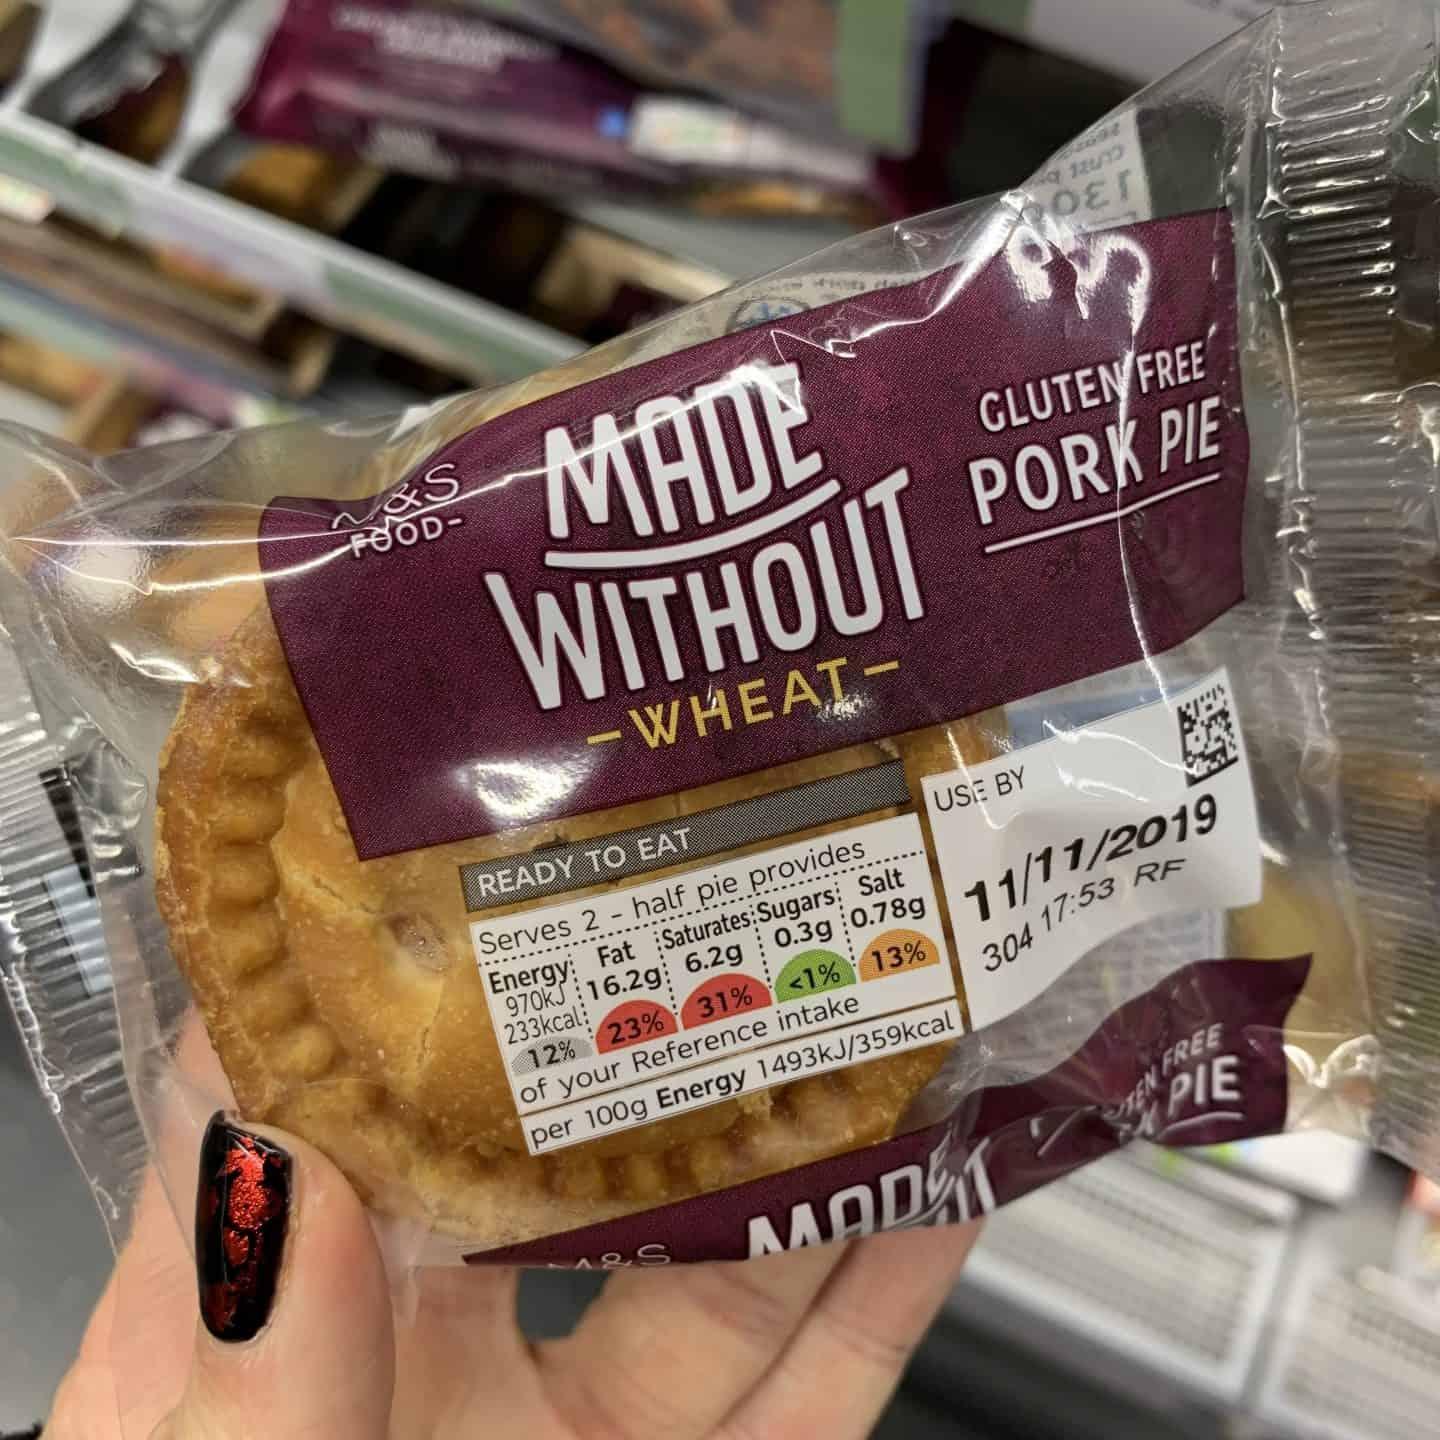 gluten free pork pie m&s